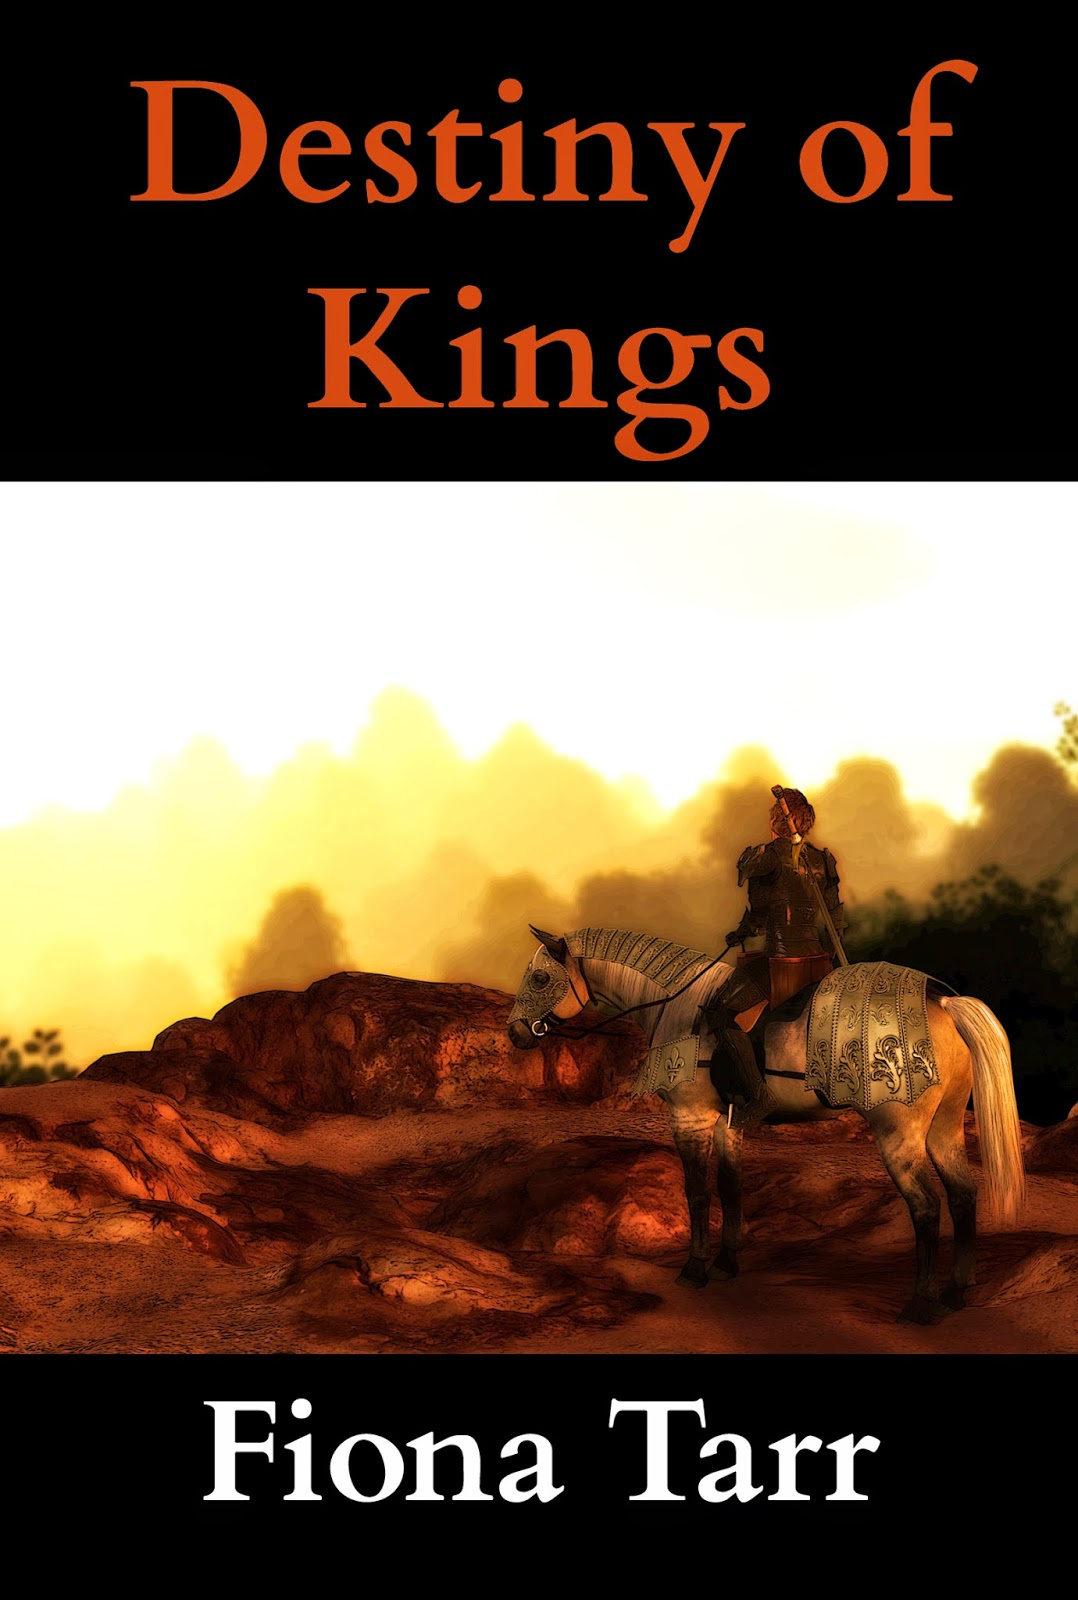 http://www.amazon.com/Destiny-Kings-Covenant-Grace-Book-ebook/dp/B00KNQ6EYC/ref=sr_1_1?ie=UTF8&qid=1419286394&sr=8-1&keywords=Fiona+Tarr